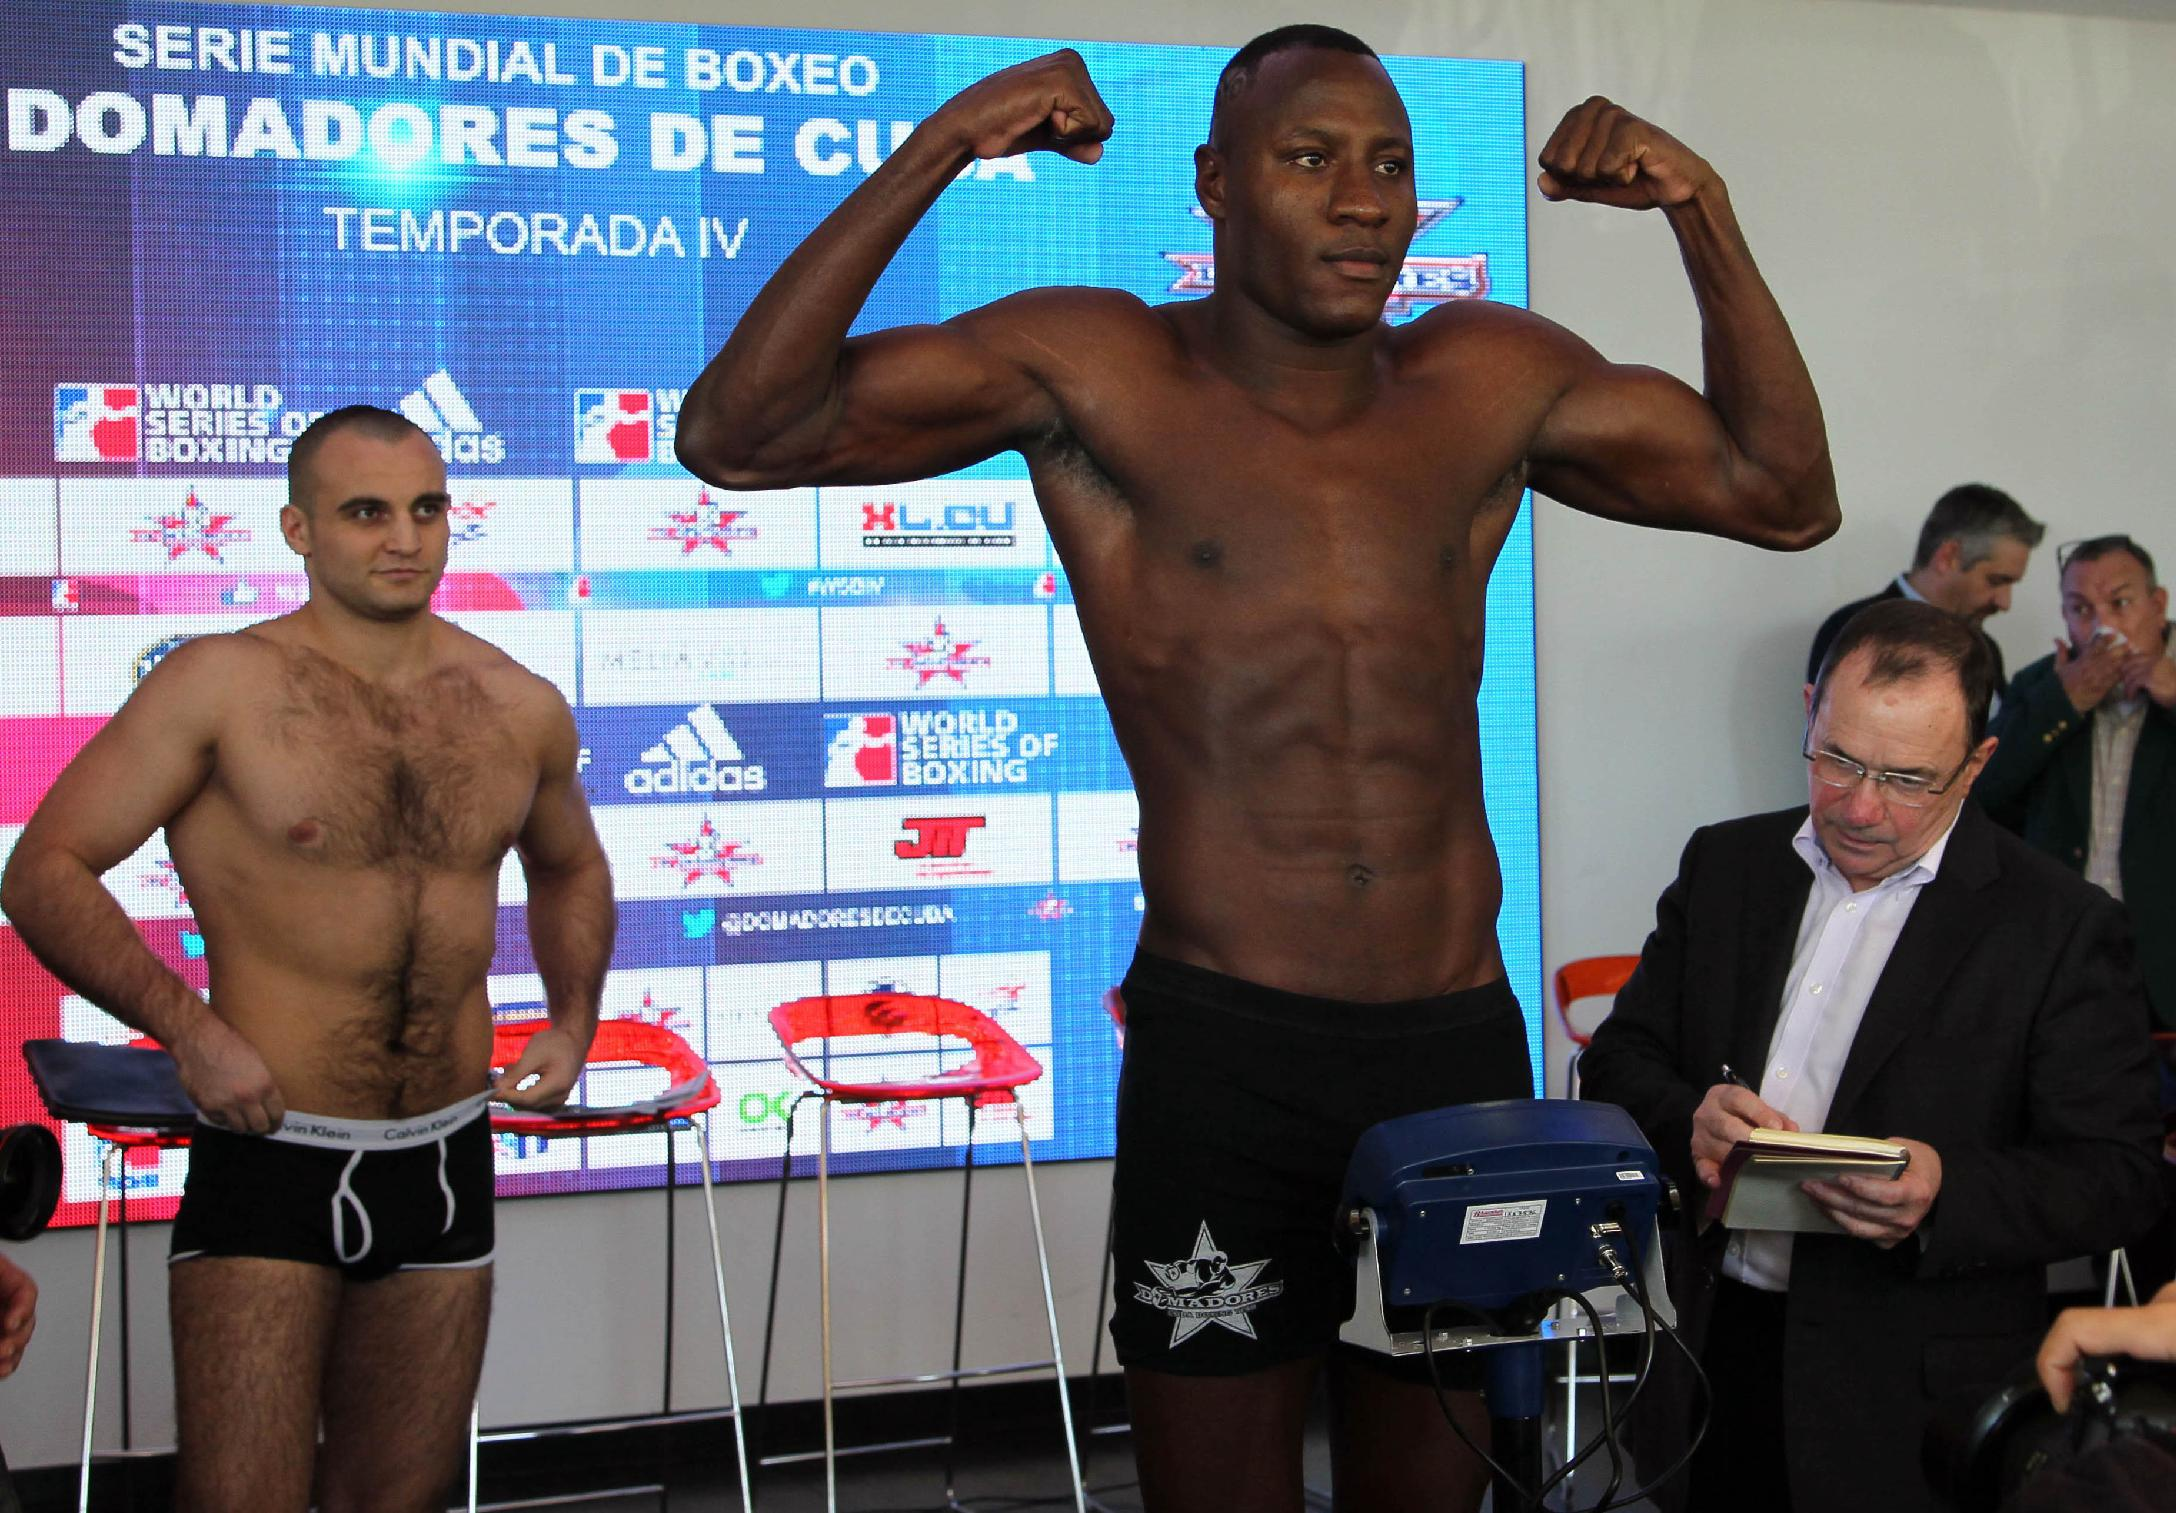 CORRECTS DAY OF BOXING MATCHES Cuban heavyweight boxer Erislandy Savon, at front right, poses for photos during the weigh-in session as his opponent Vitaly Kudukhov from Russia, left, looks on in  Havana, Cuba, Thursday, Dec. 5, 2013. Cuban and Russian boxers will face-off at a World Series of Boxing (WSB) event Friday